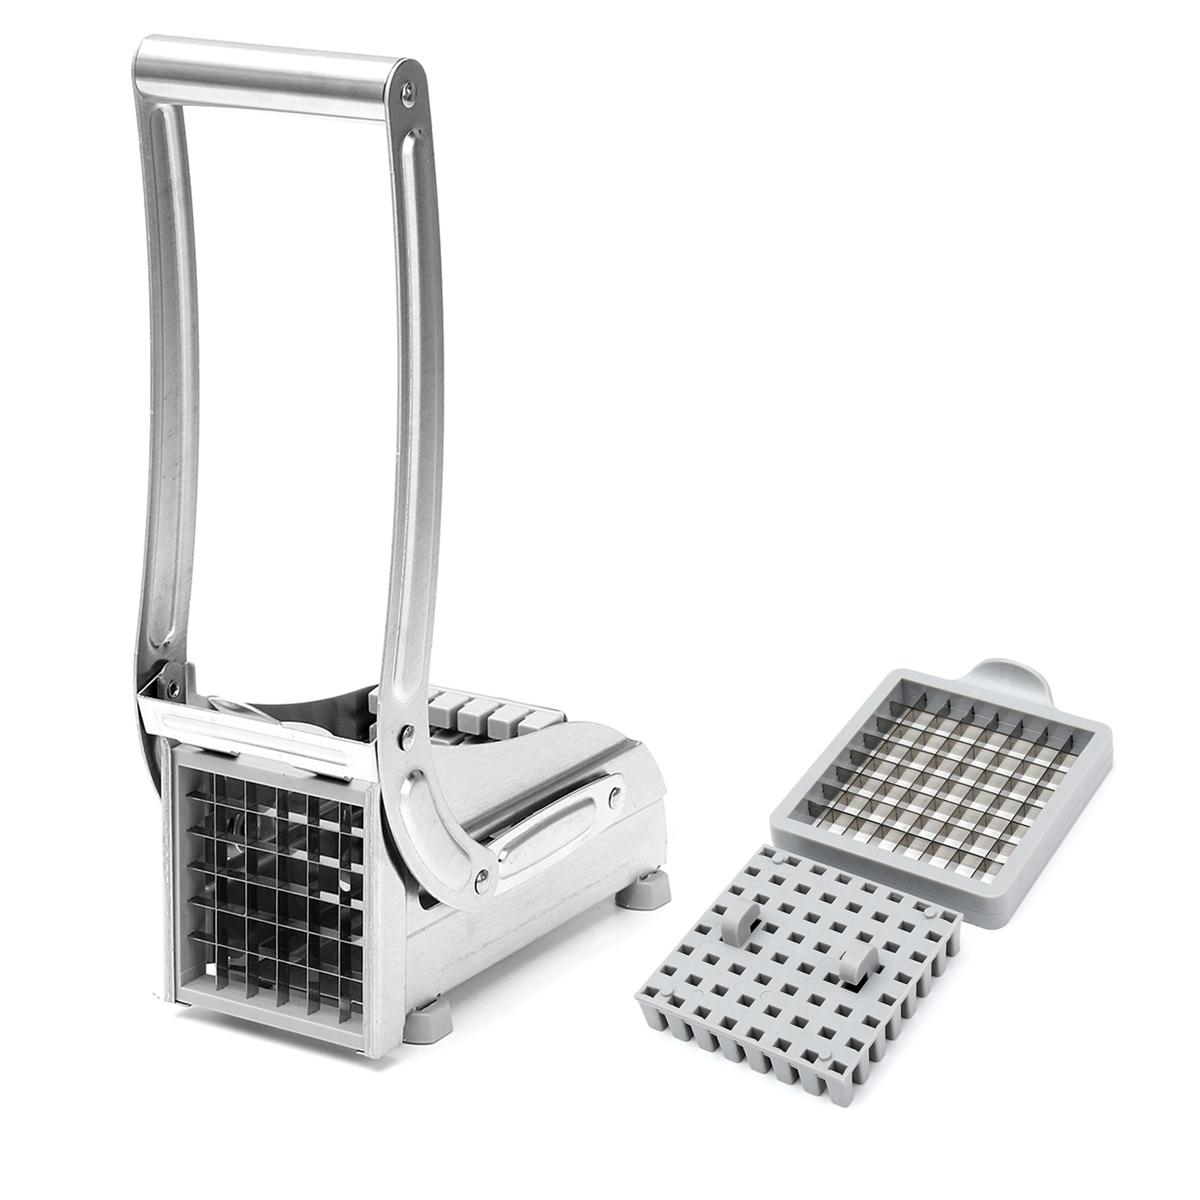 Stainless Steel French Fry Potato Cutter Maker Slicer Chopper Dicer with 2 Blade